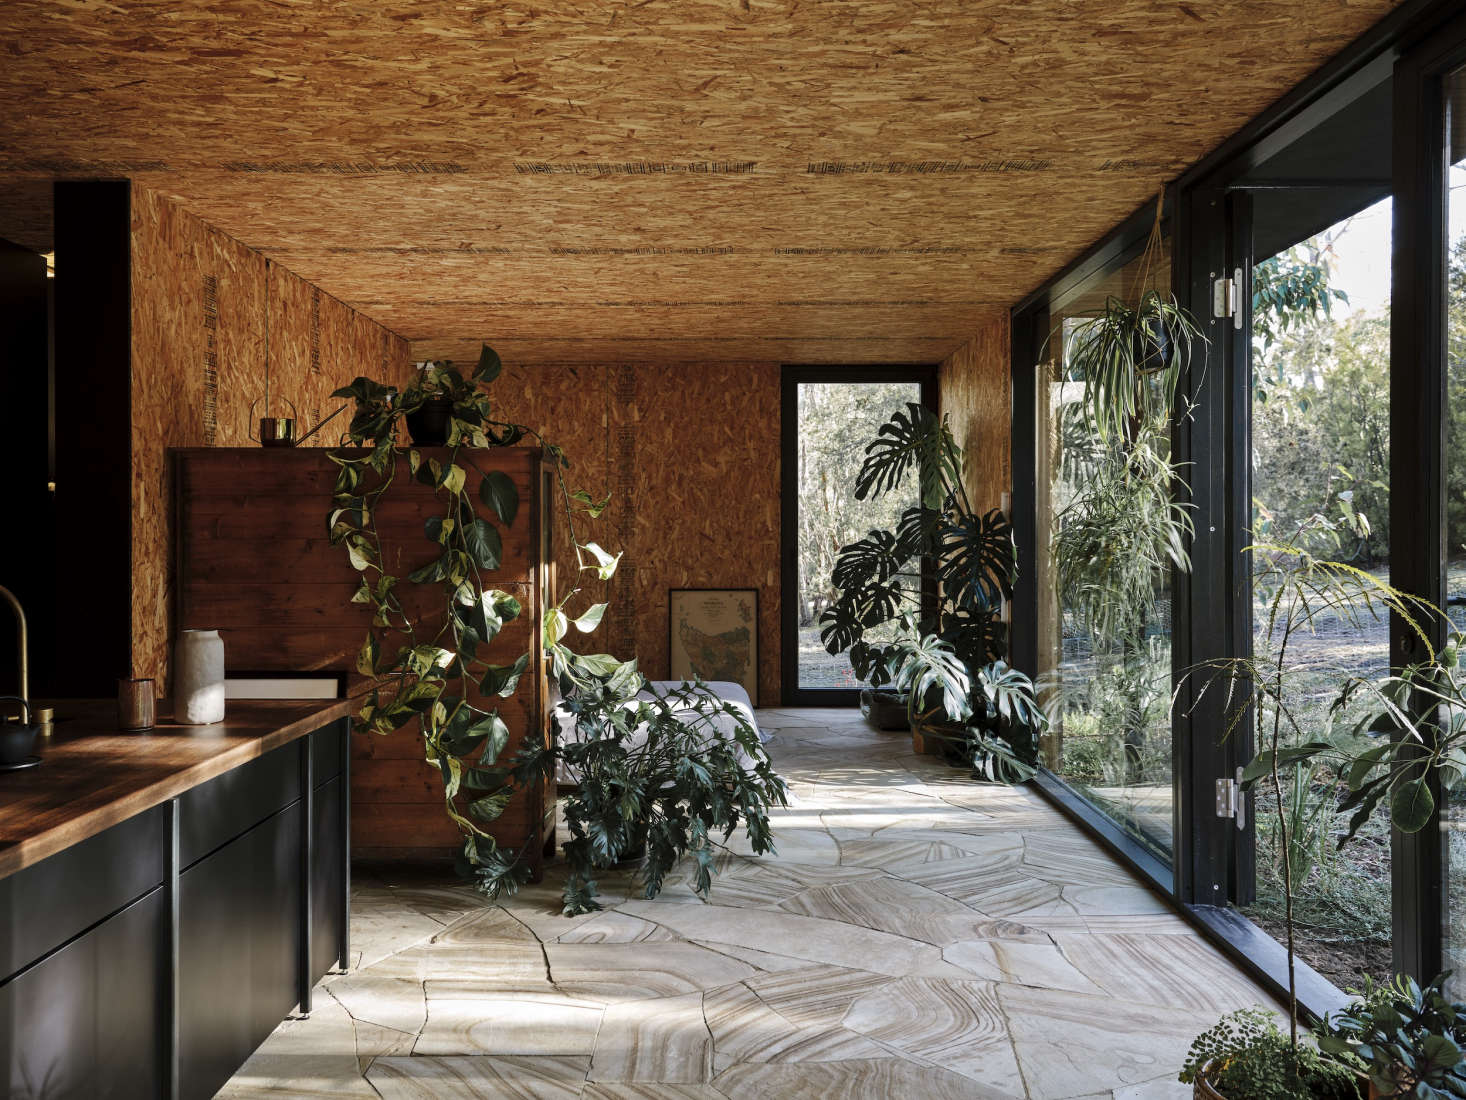 There are no colors in this small cabin—other than abundant greenery. Photograph byAdam Gibson, courtesy ofArchier, from The New Starter House? An Architect Designs a Home That Can Move With Its Owners.